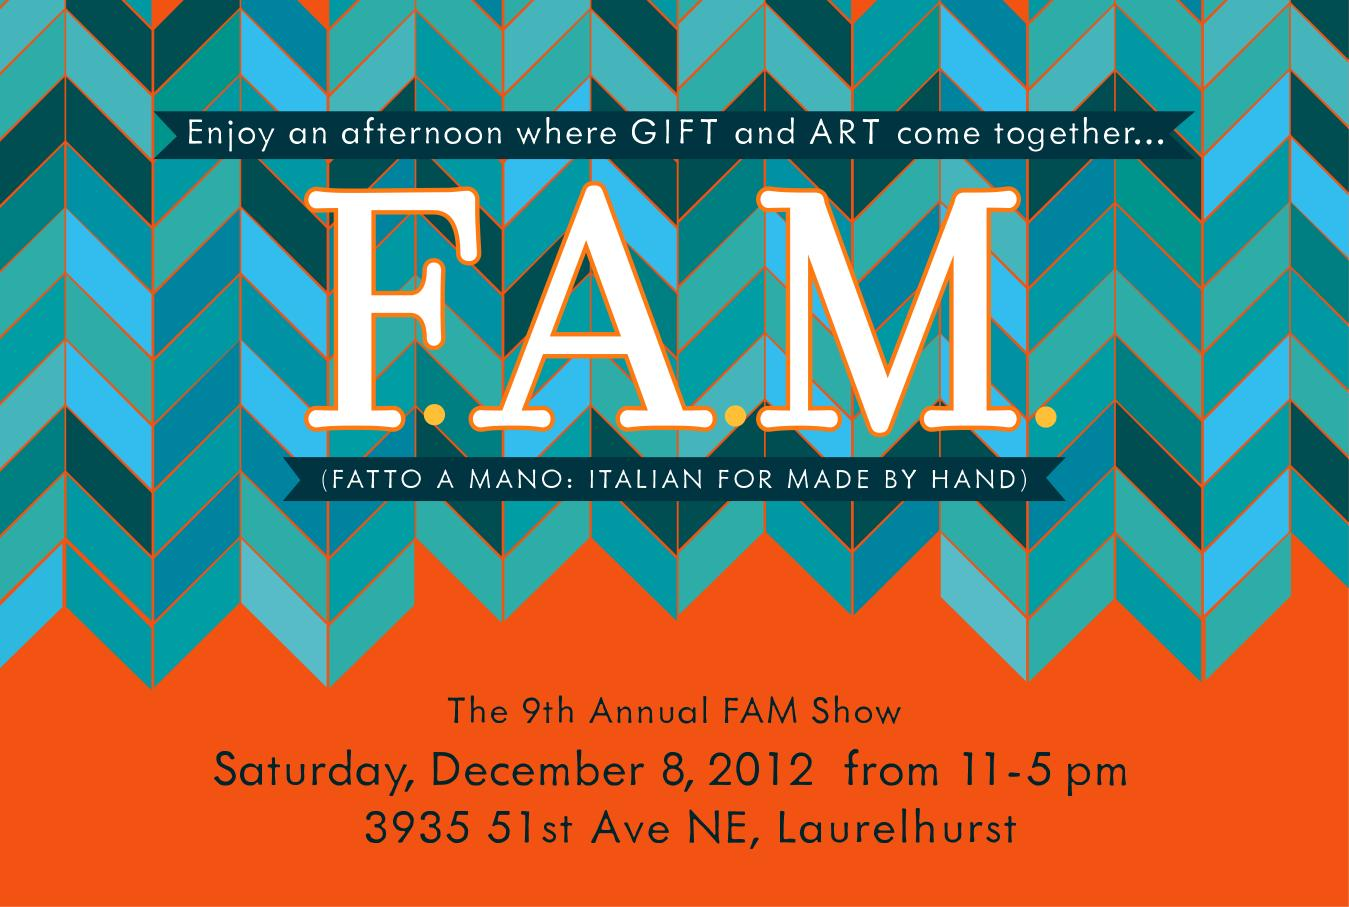 The 9th Annual FAM Show